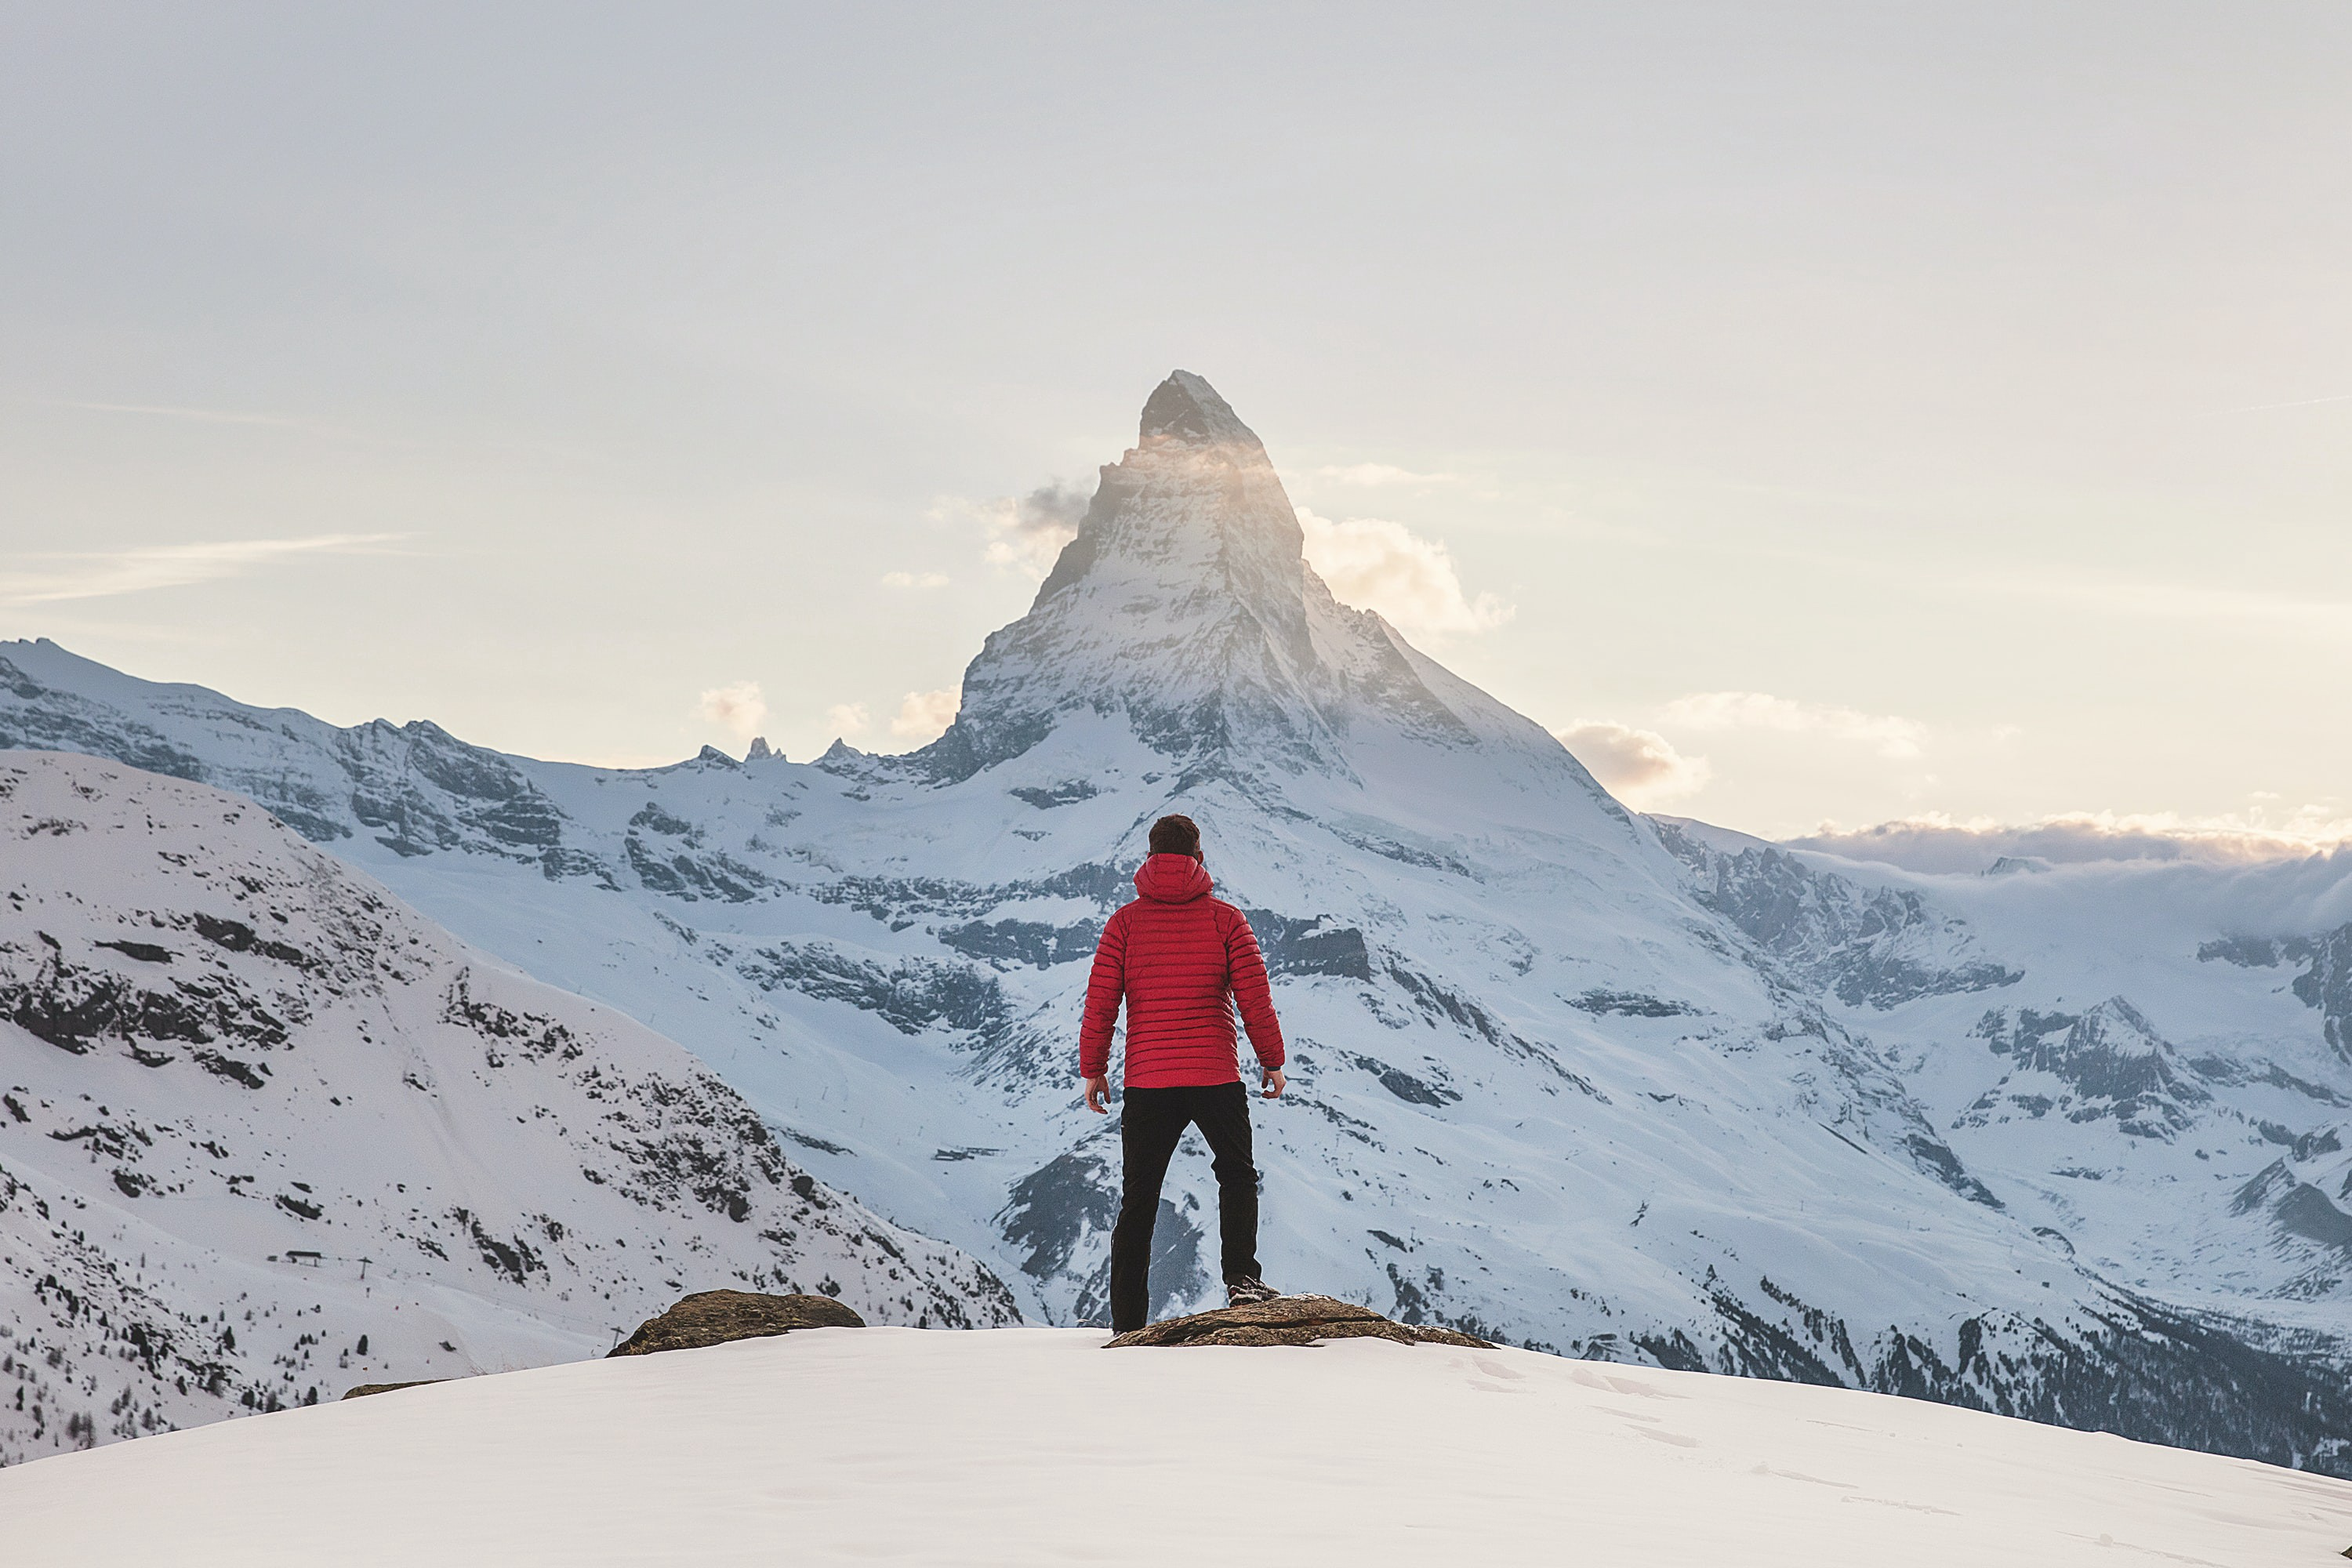 A man in a puffy, red jacket stands on a snowboard facing a mountain in the background.